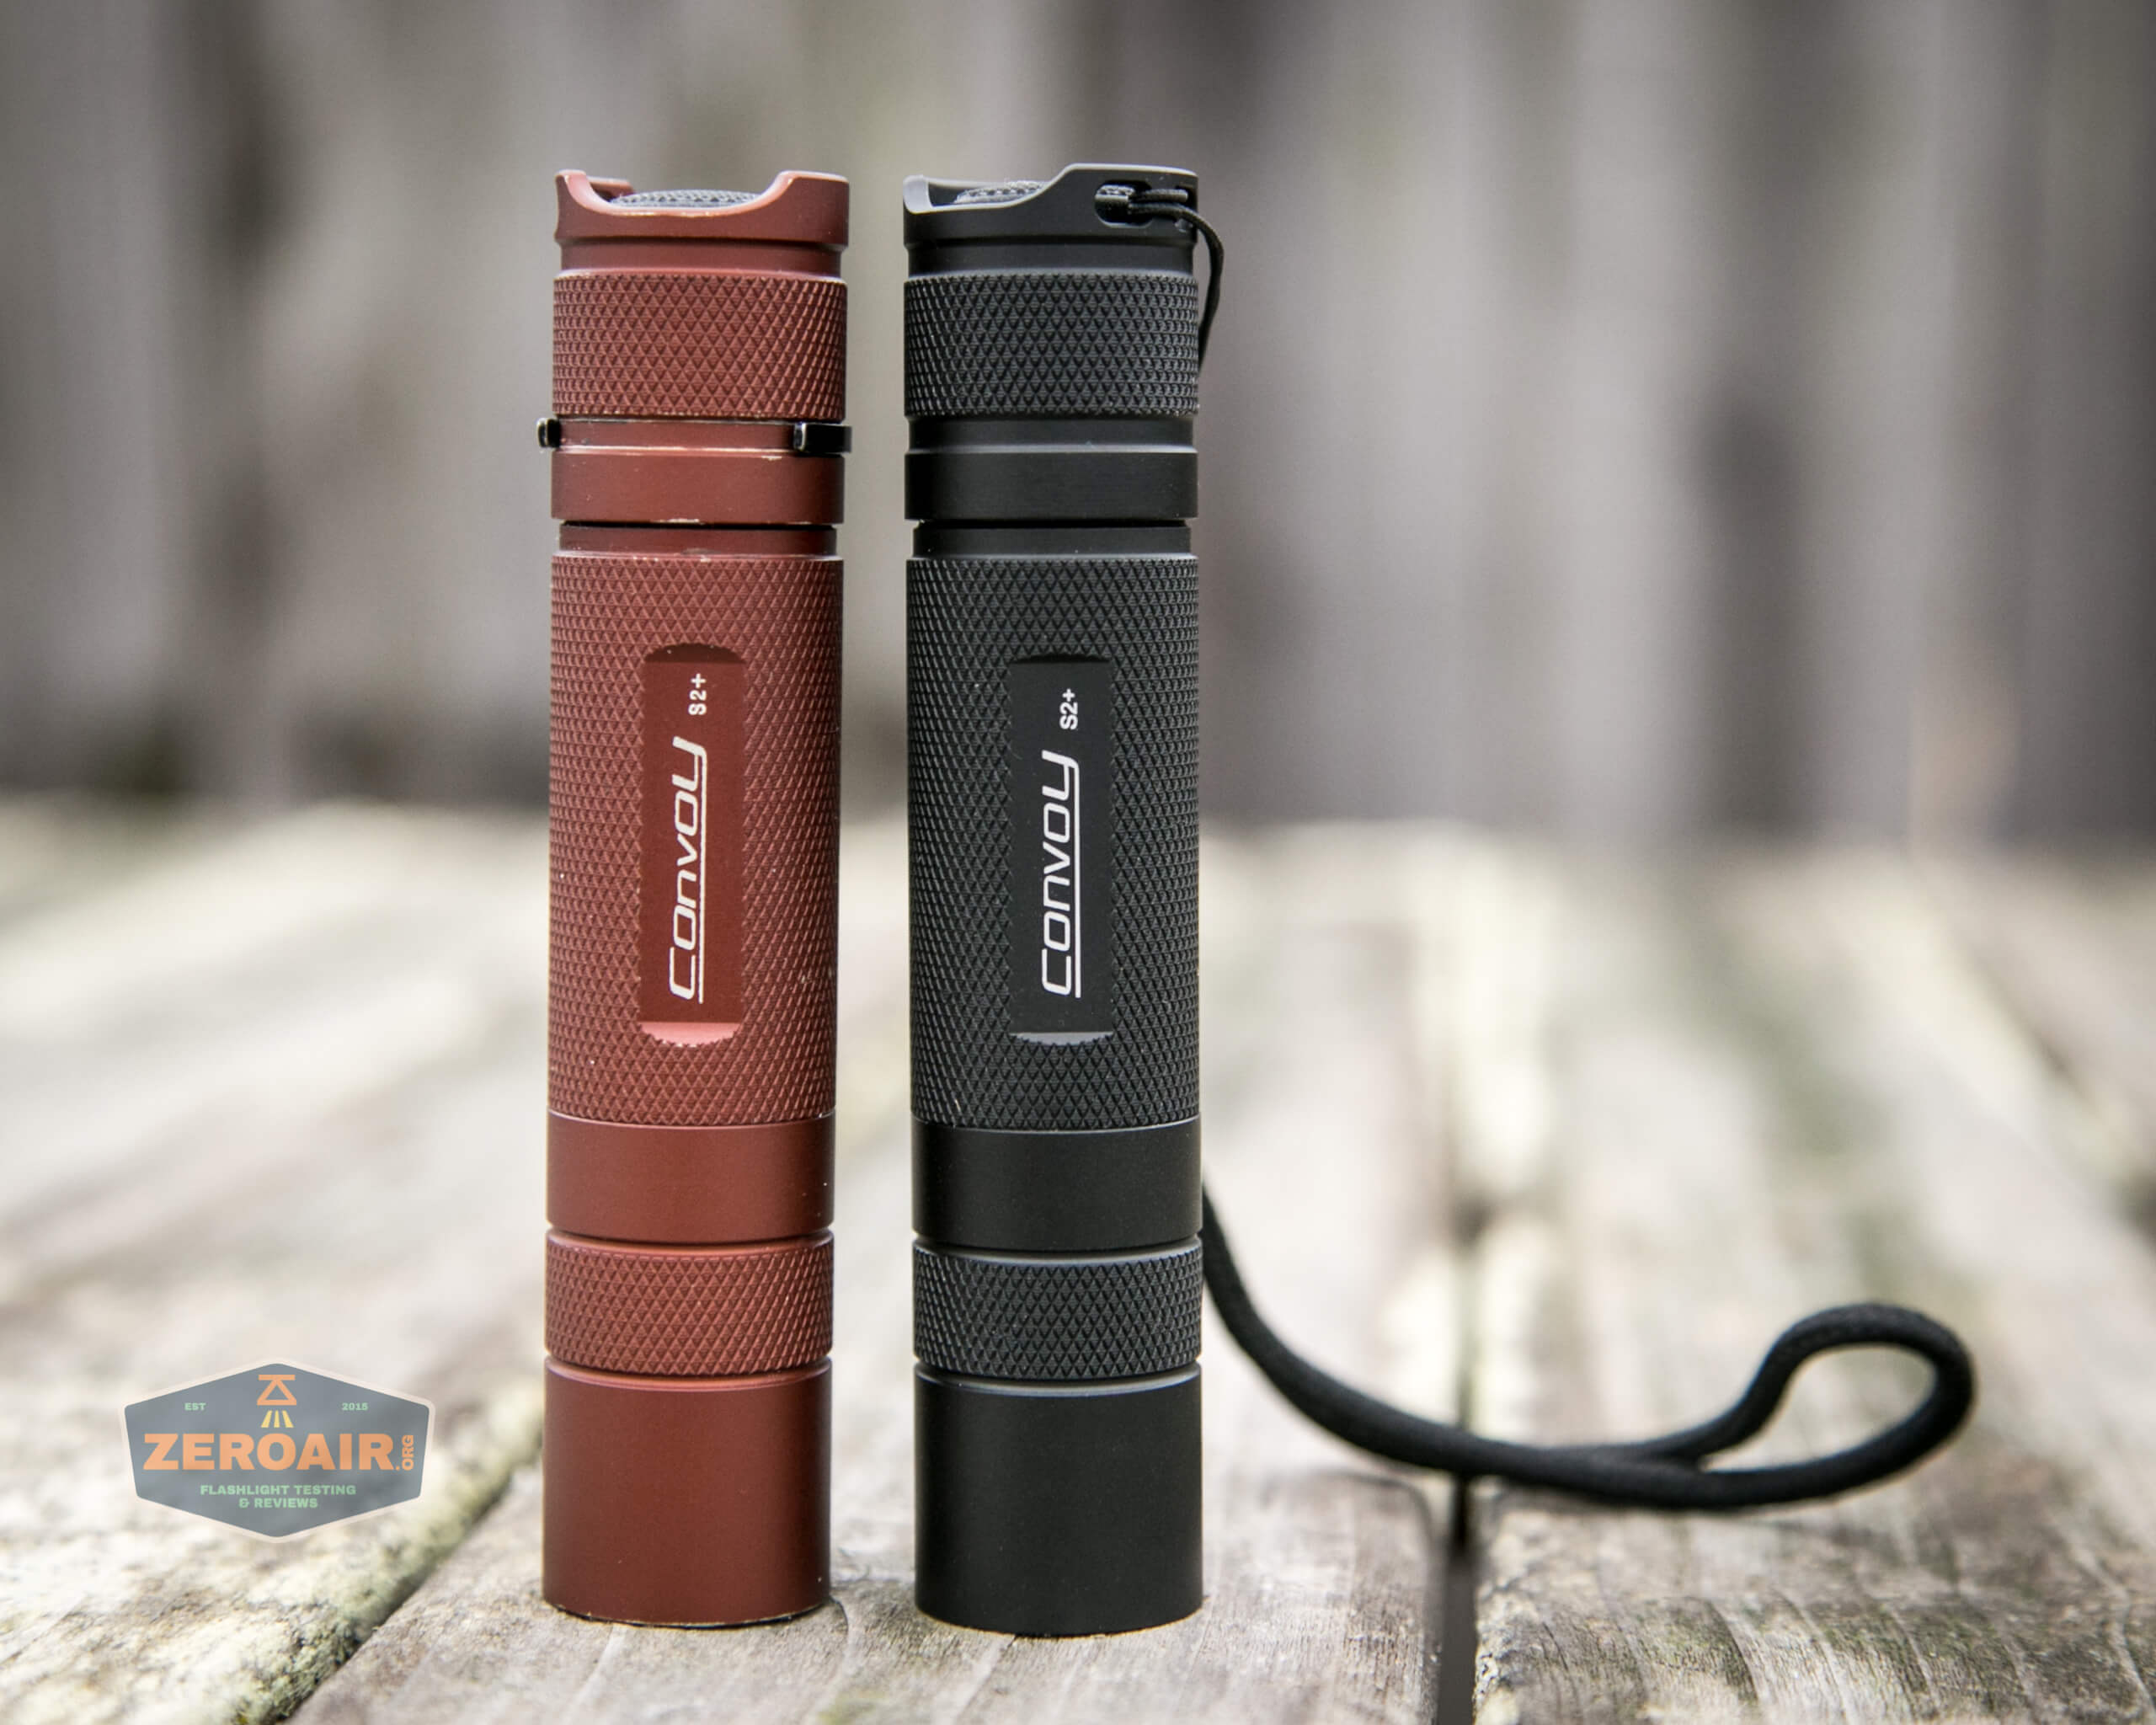 convoy s2+ uv flashlight beside convoy s2+